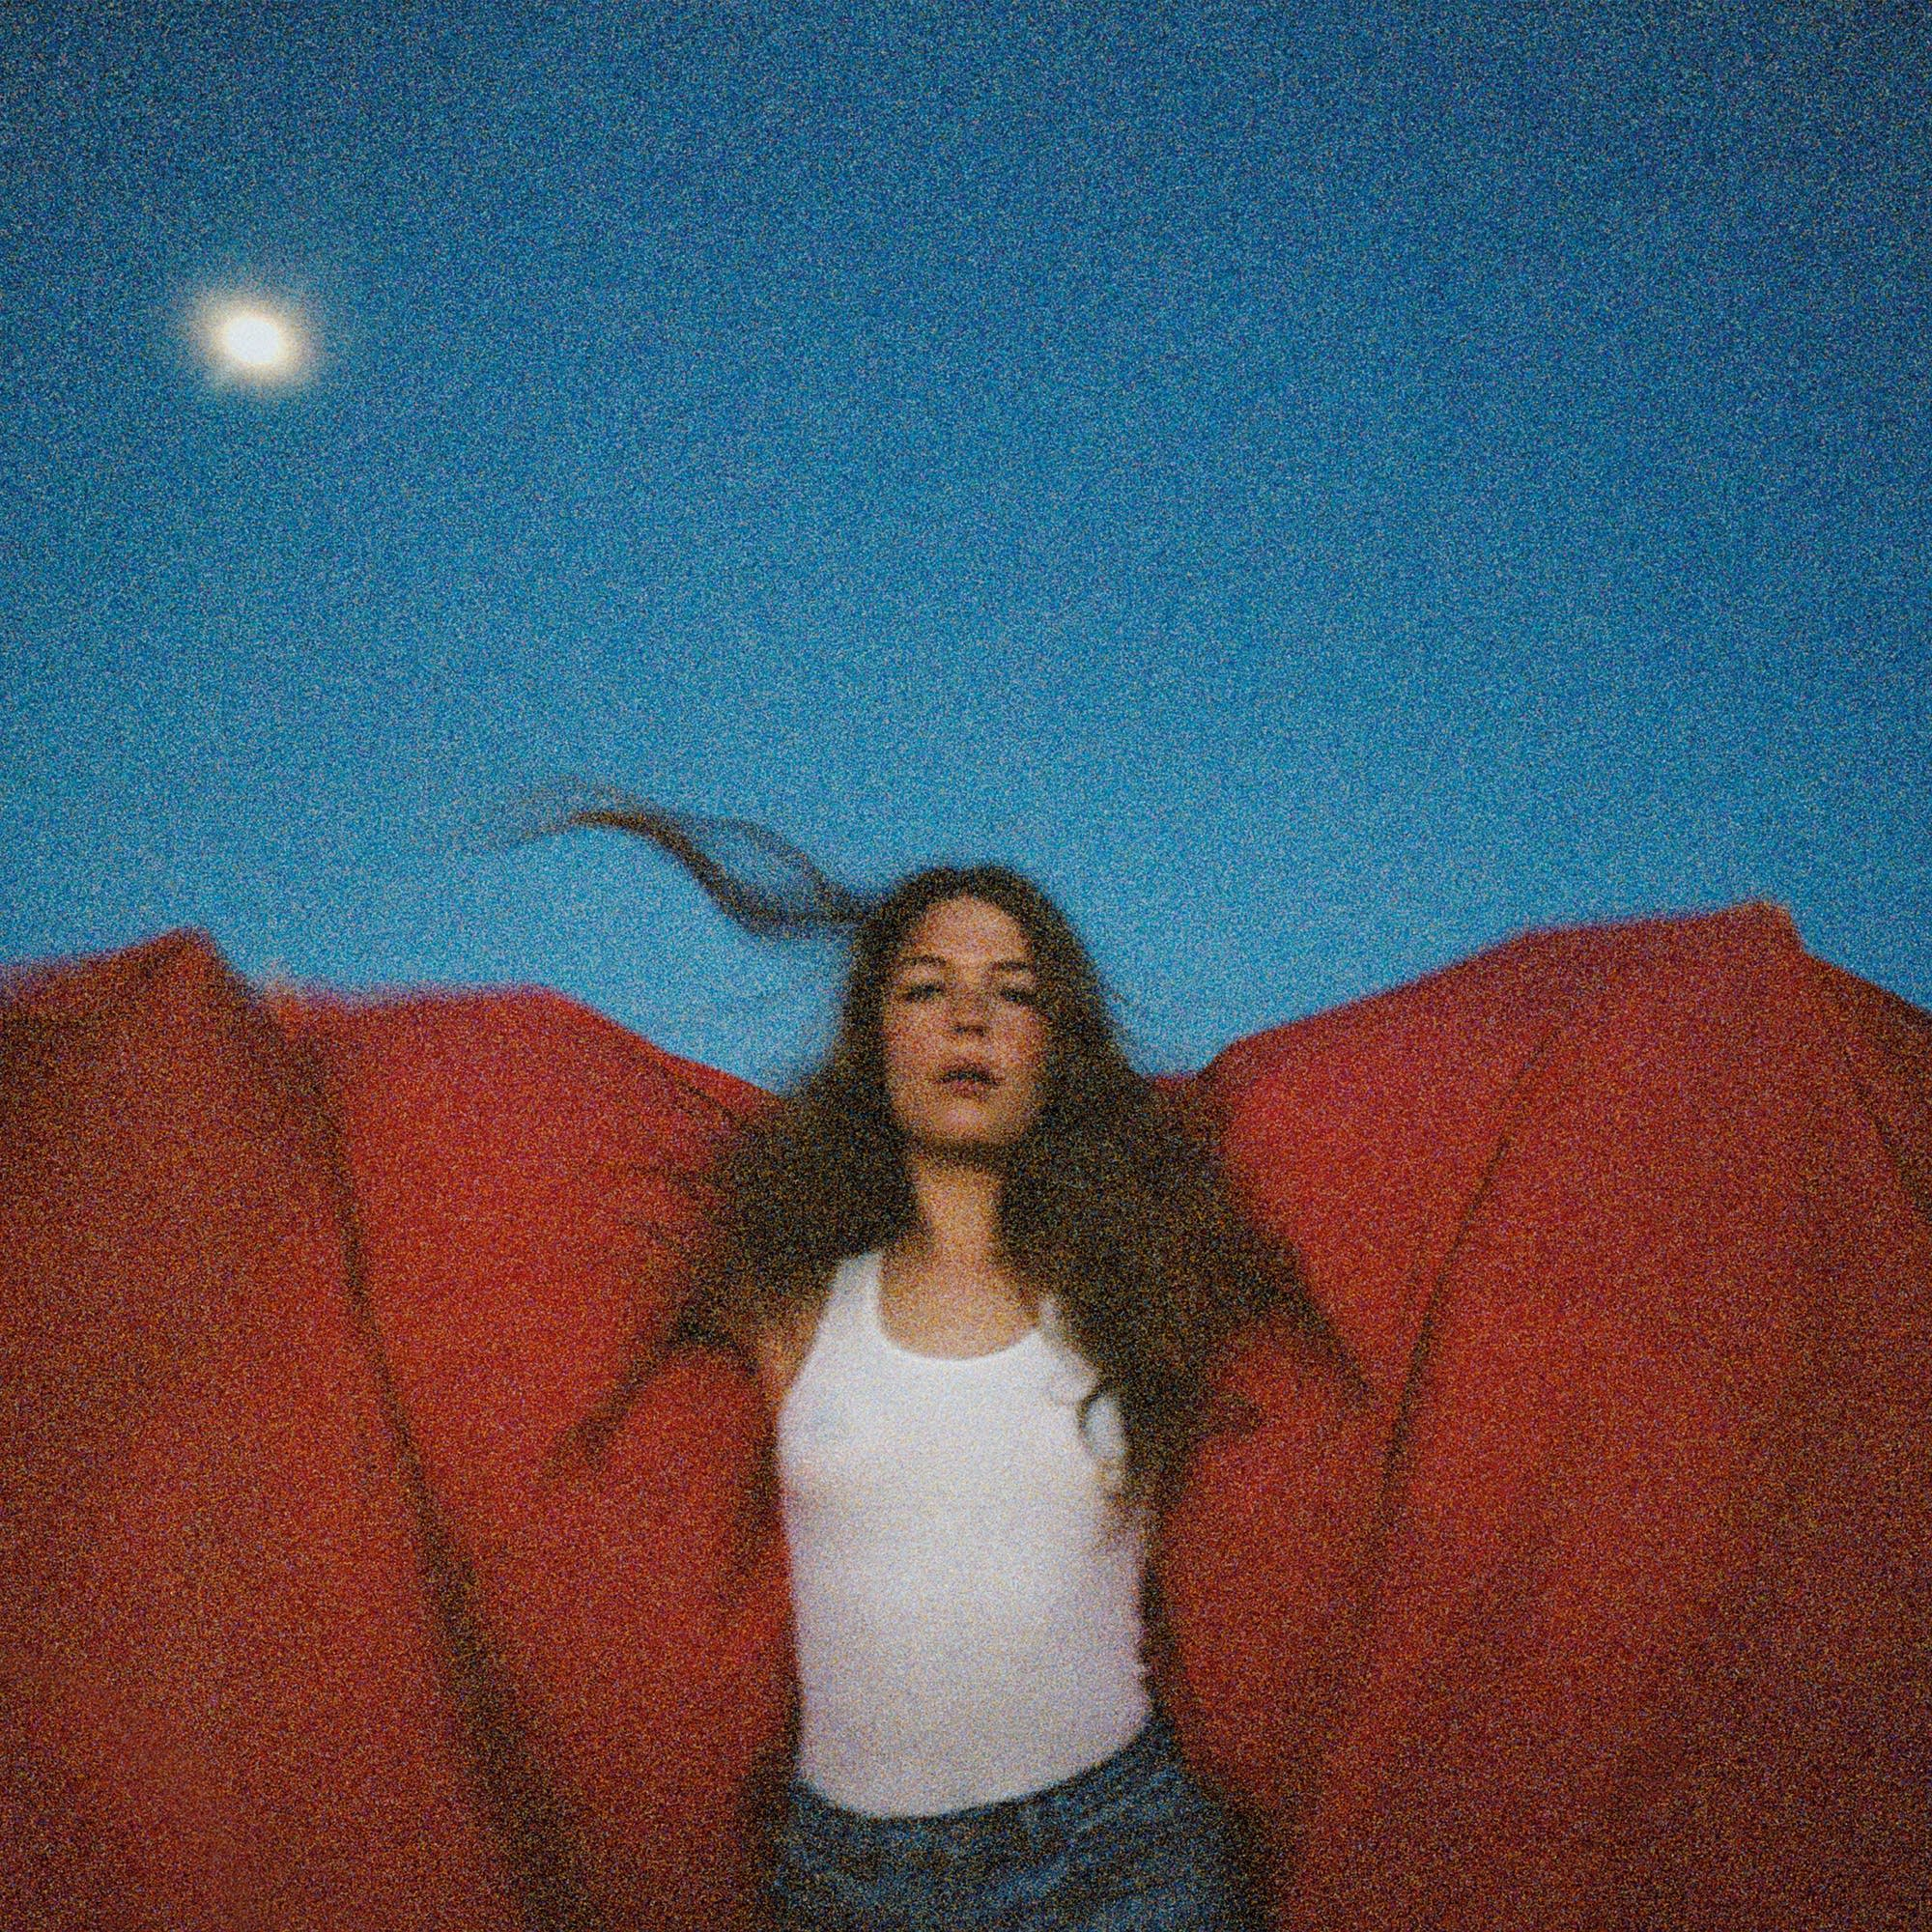 Maggie Rogers, 'Heard It in a Past Life'